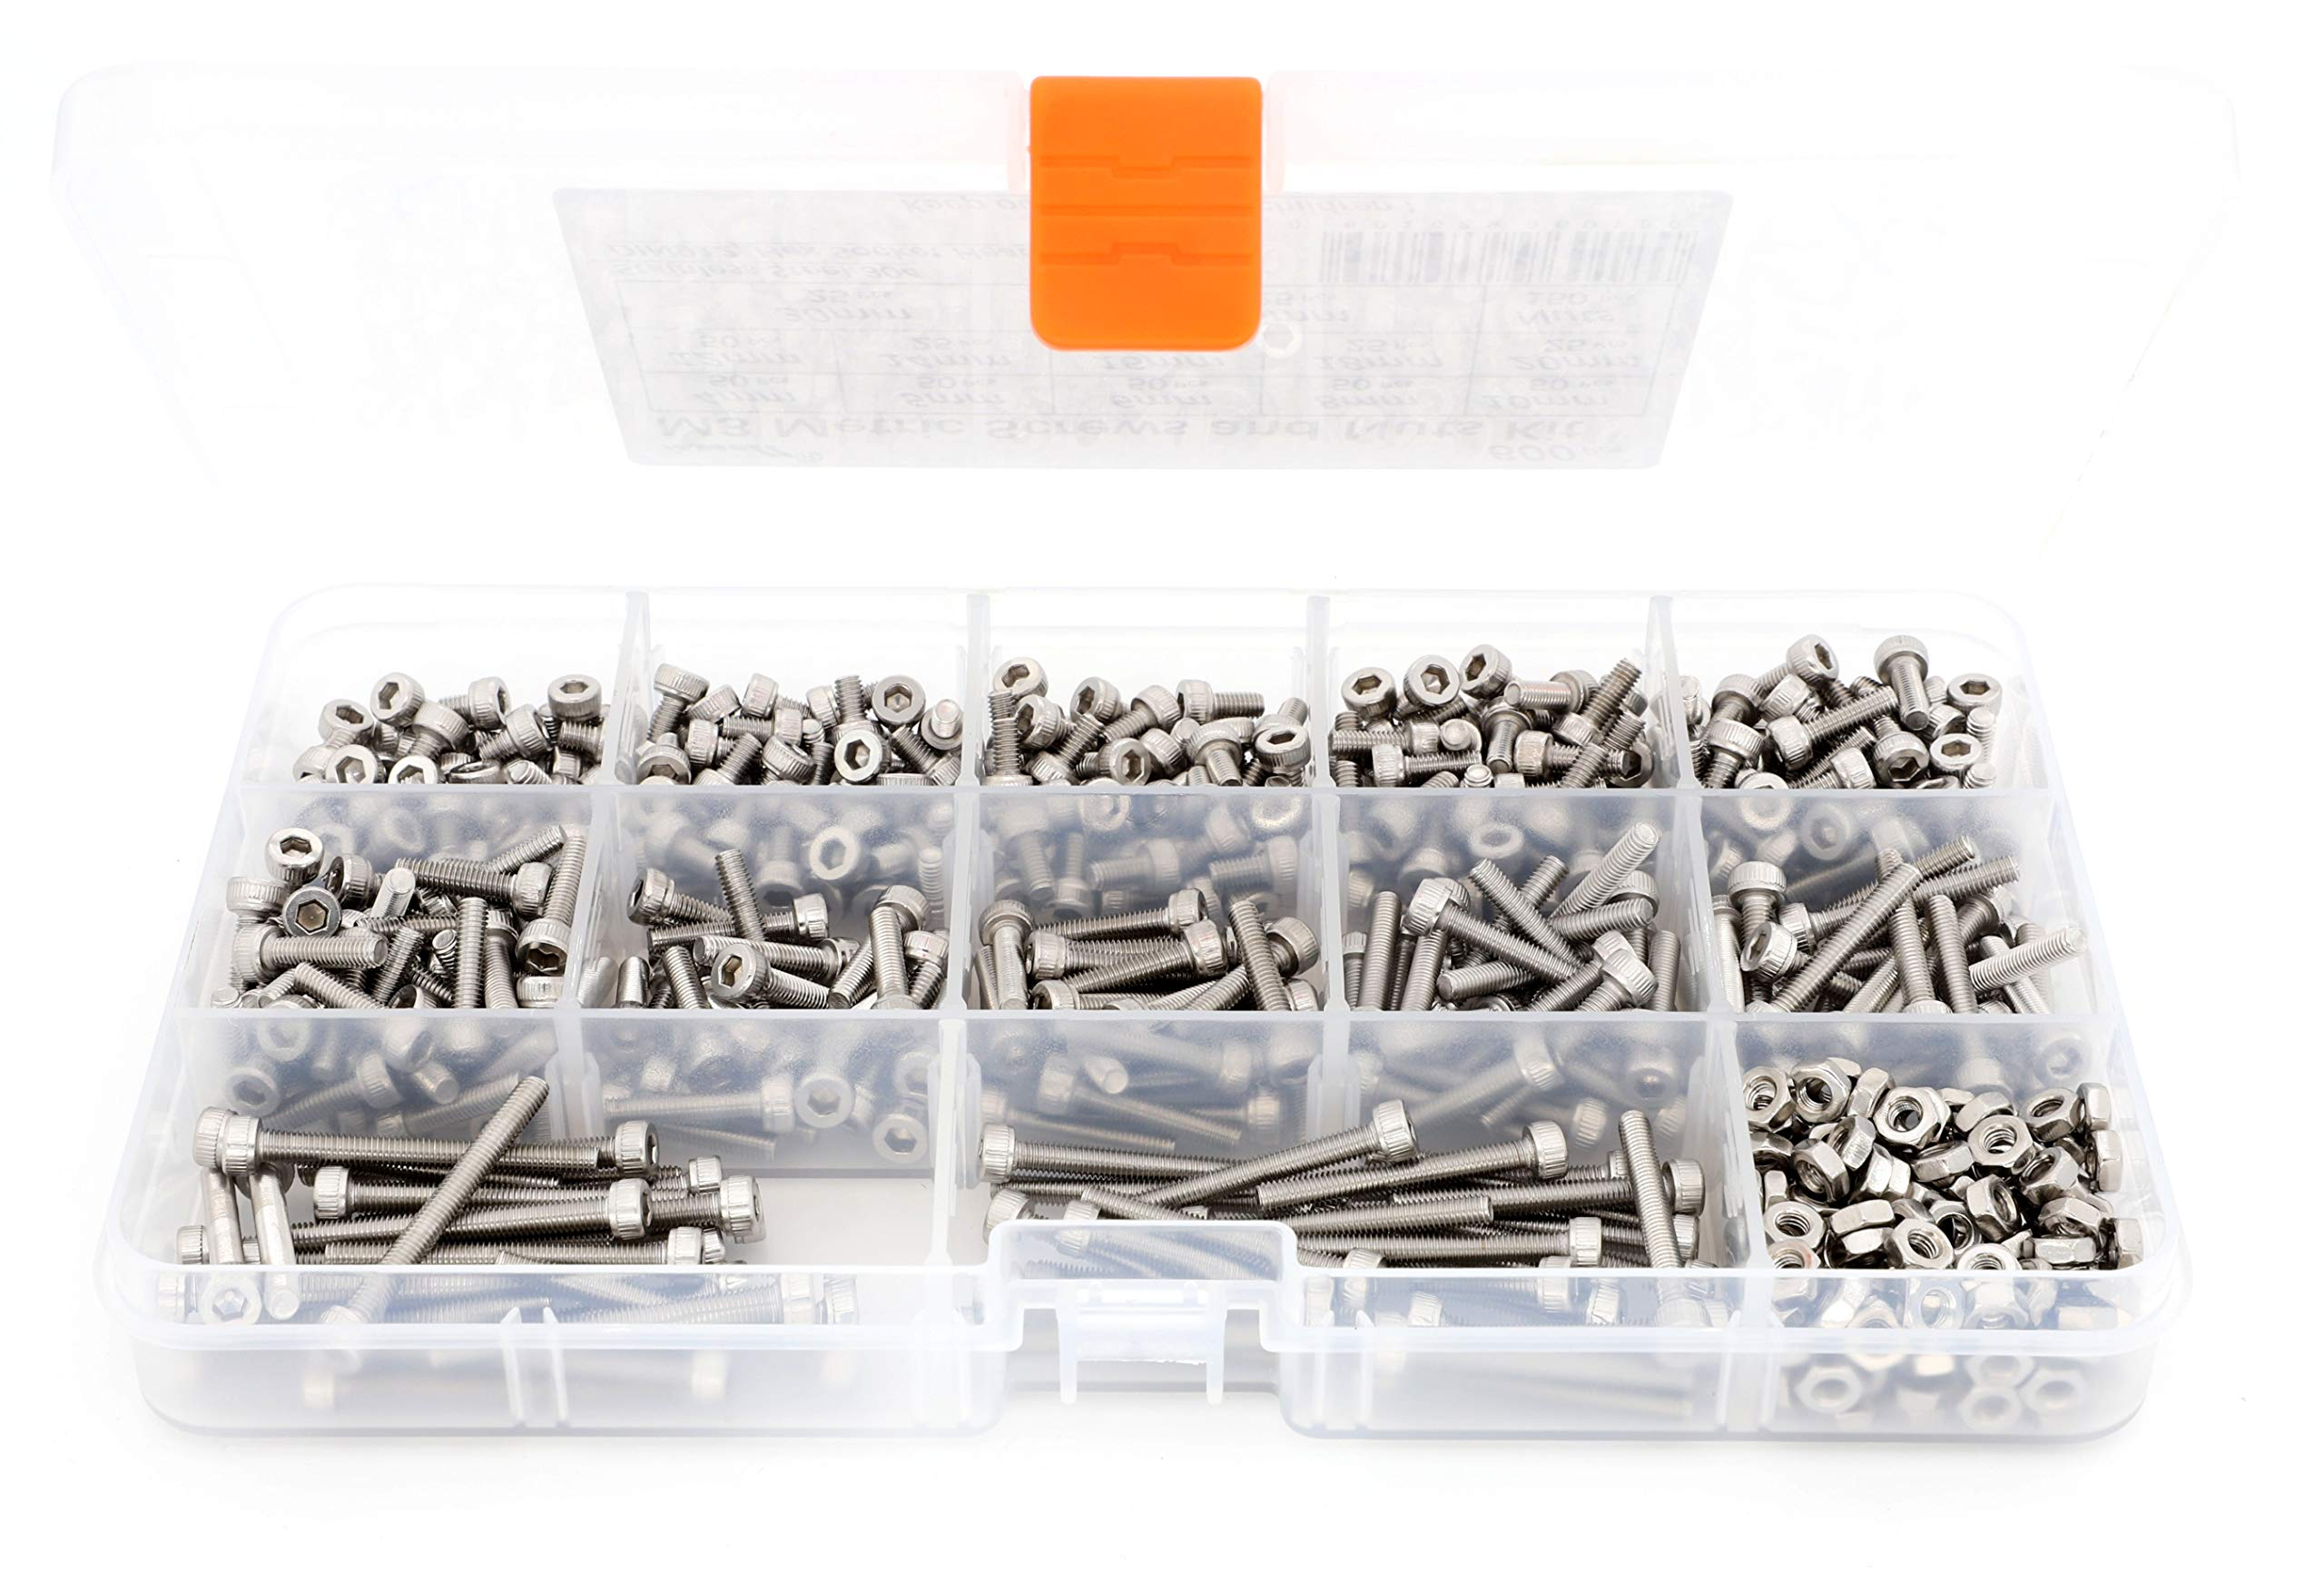 iExcell 600 Pcs Metric M3 DIN912 Stainless Steel 304 Hex Socket Head Cap Screws and Nuts Assortment Kit